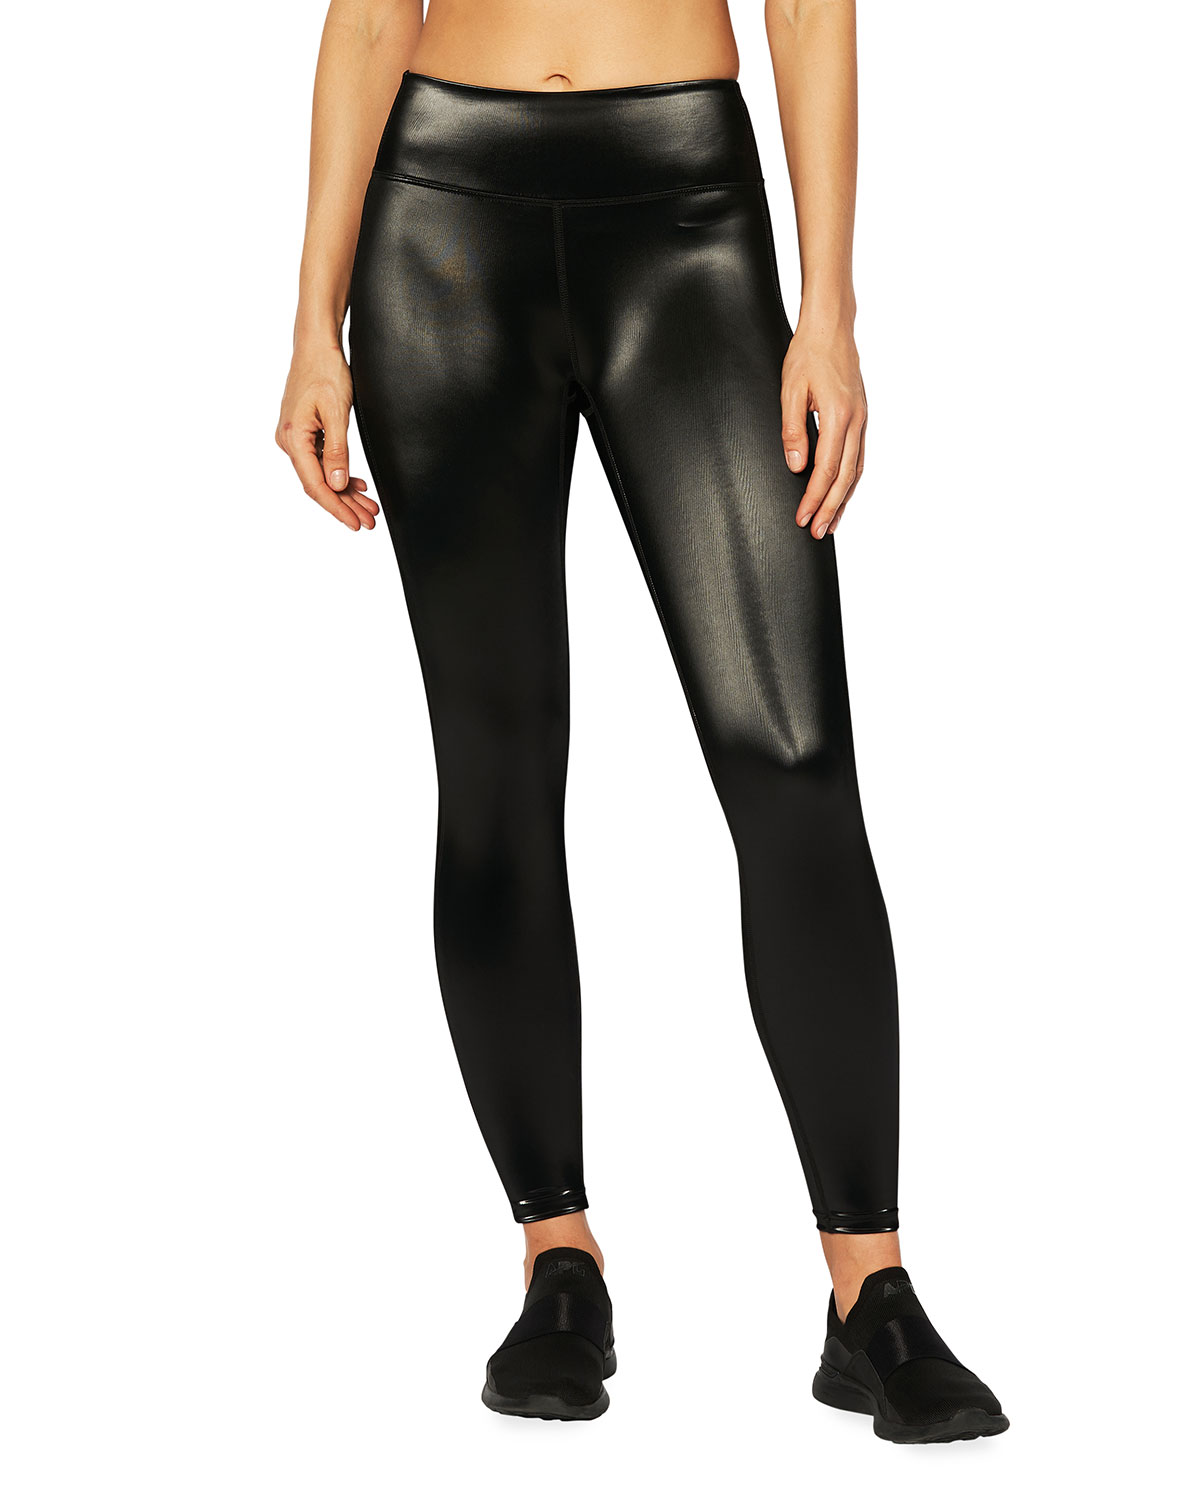 Heroine Sport DUTCHESS SATIN LEGGINGS